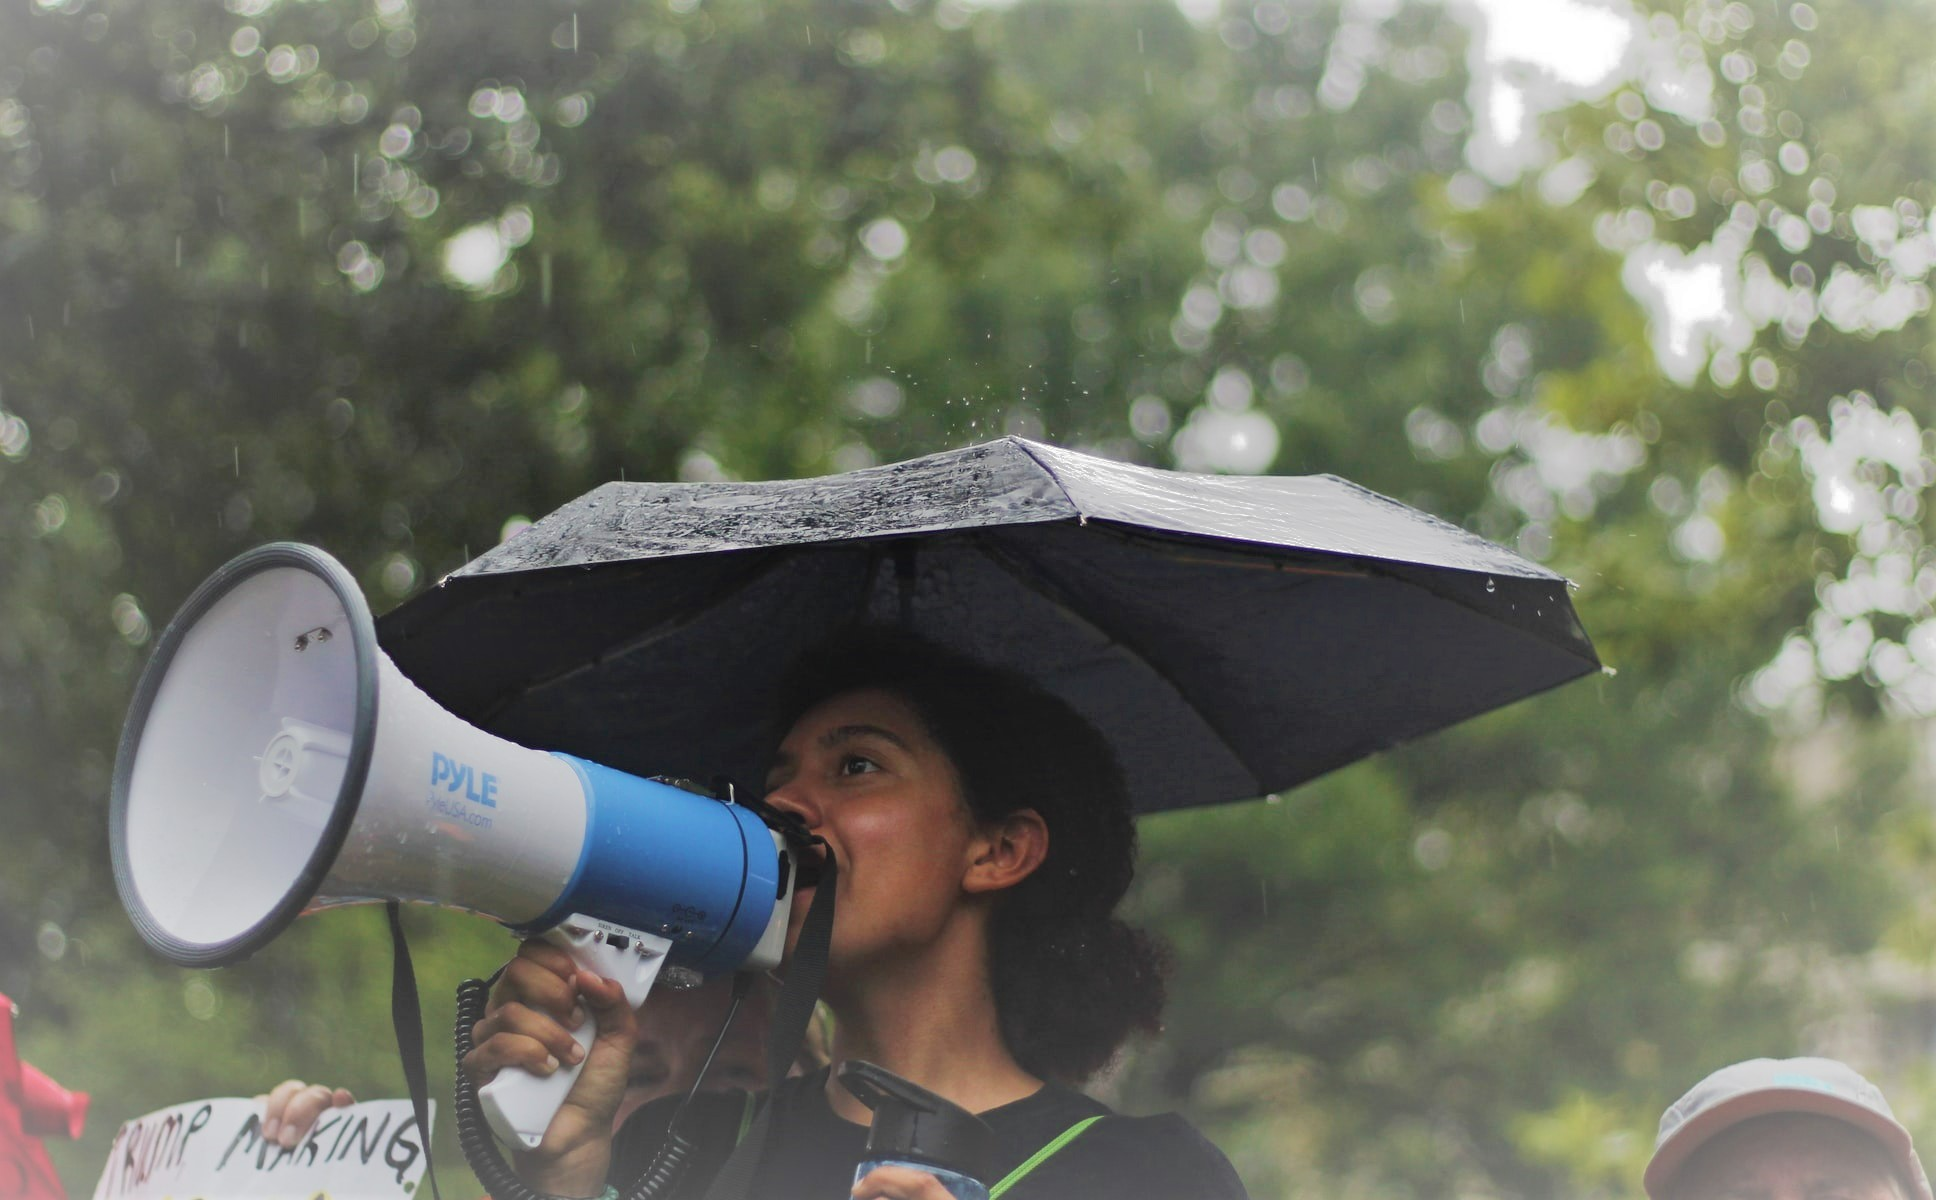 woman protesting with megaphone